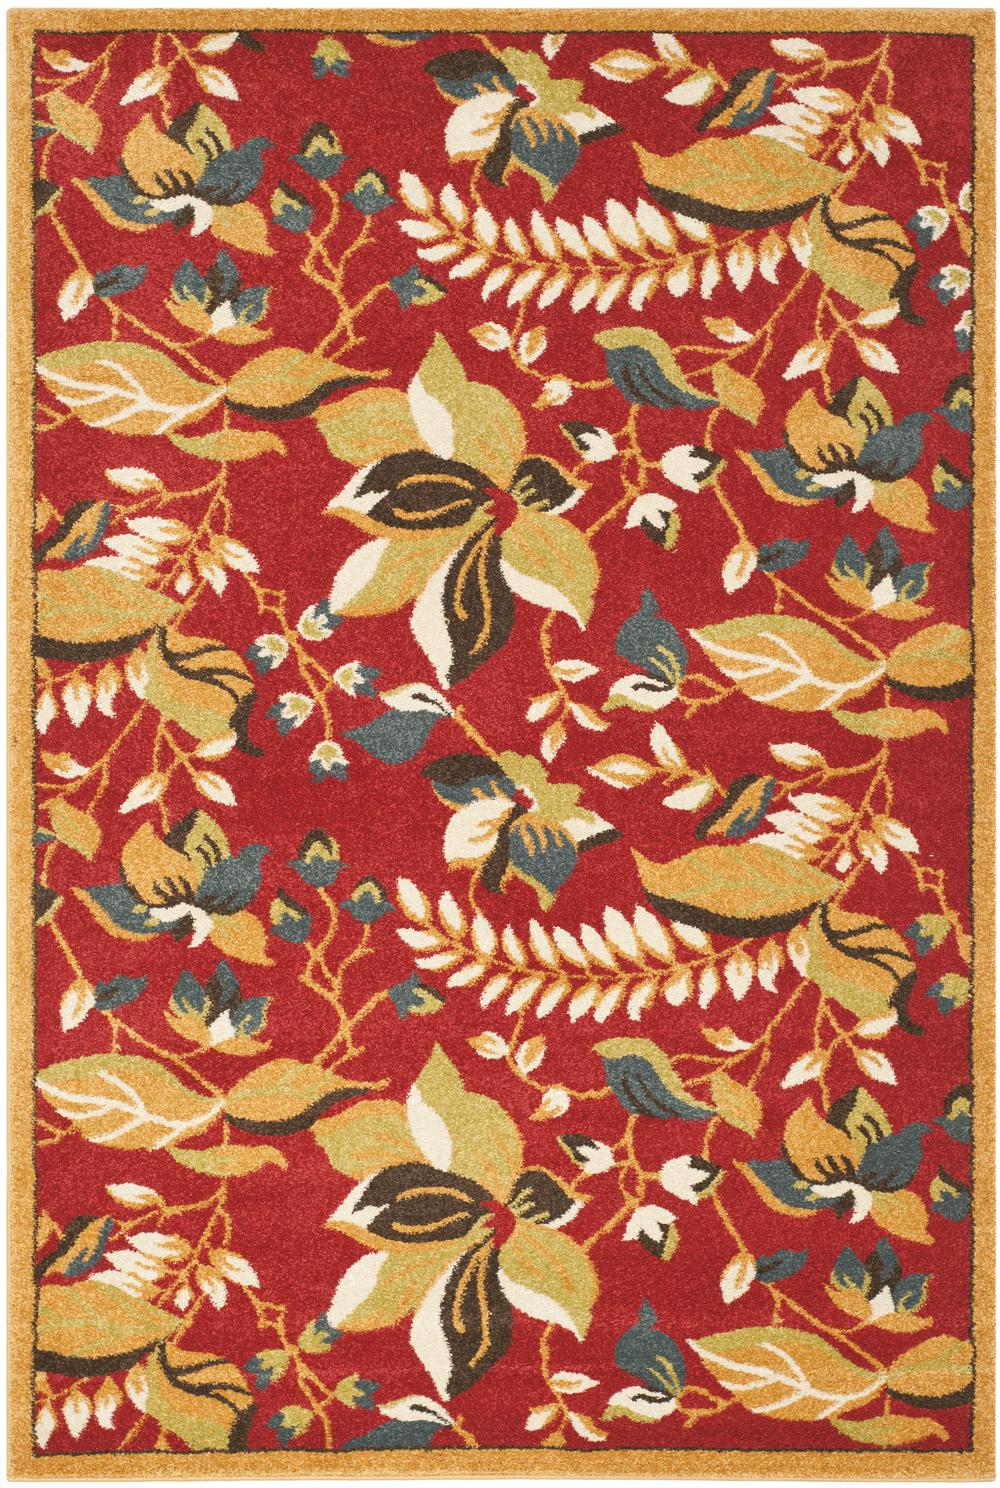 Safavieh Newbury Nwb8705 4020 Red And Gold Area Rug Free